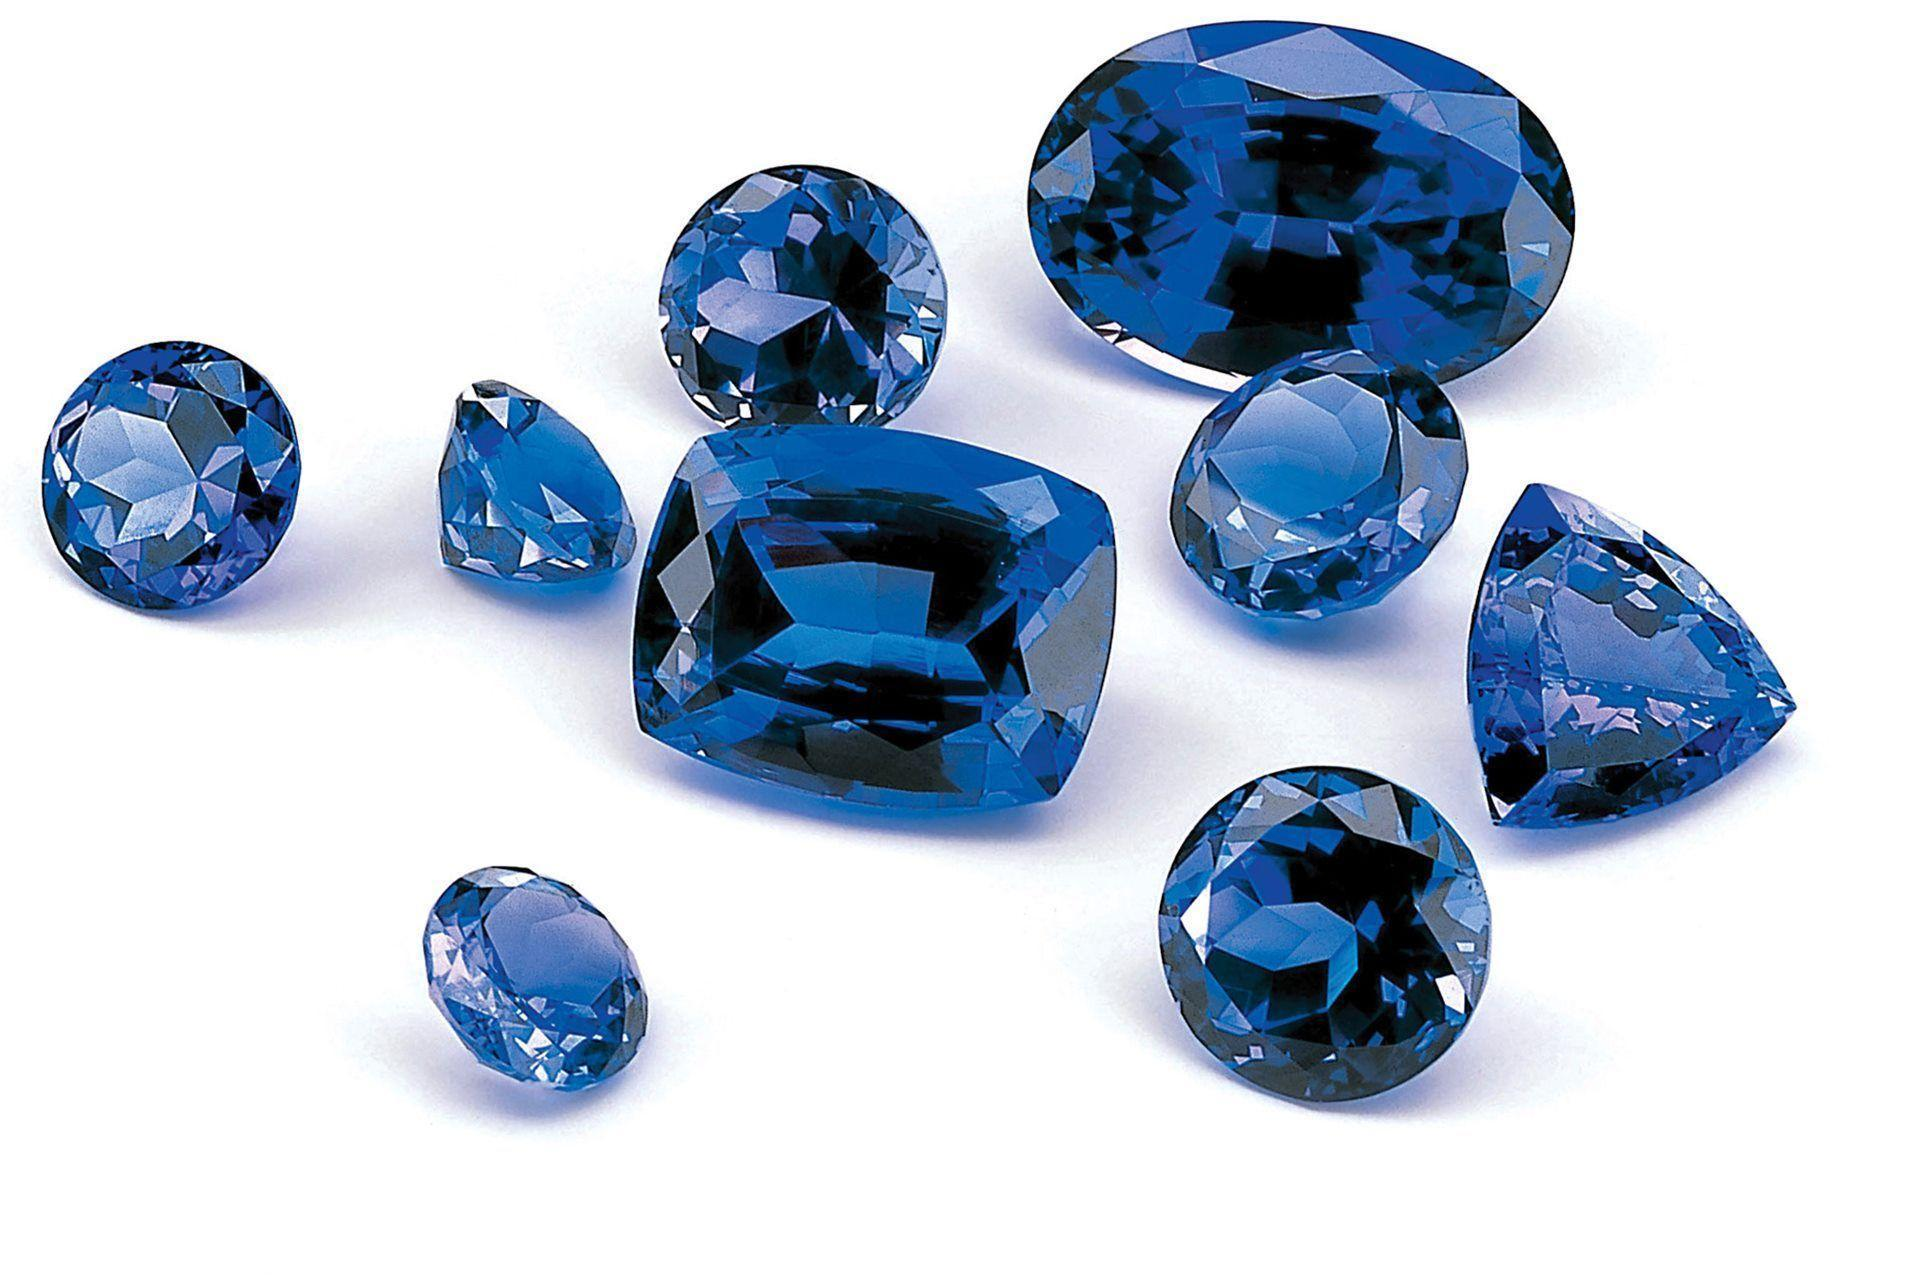 HDQ Beautiful Sapphire Images & Wallpapers (Gallery Images: 46)